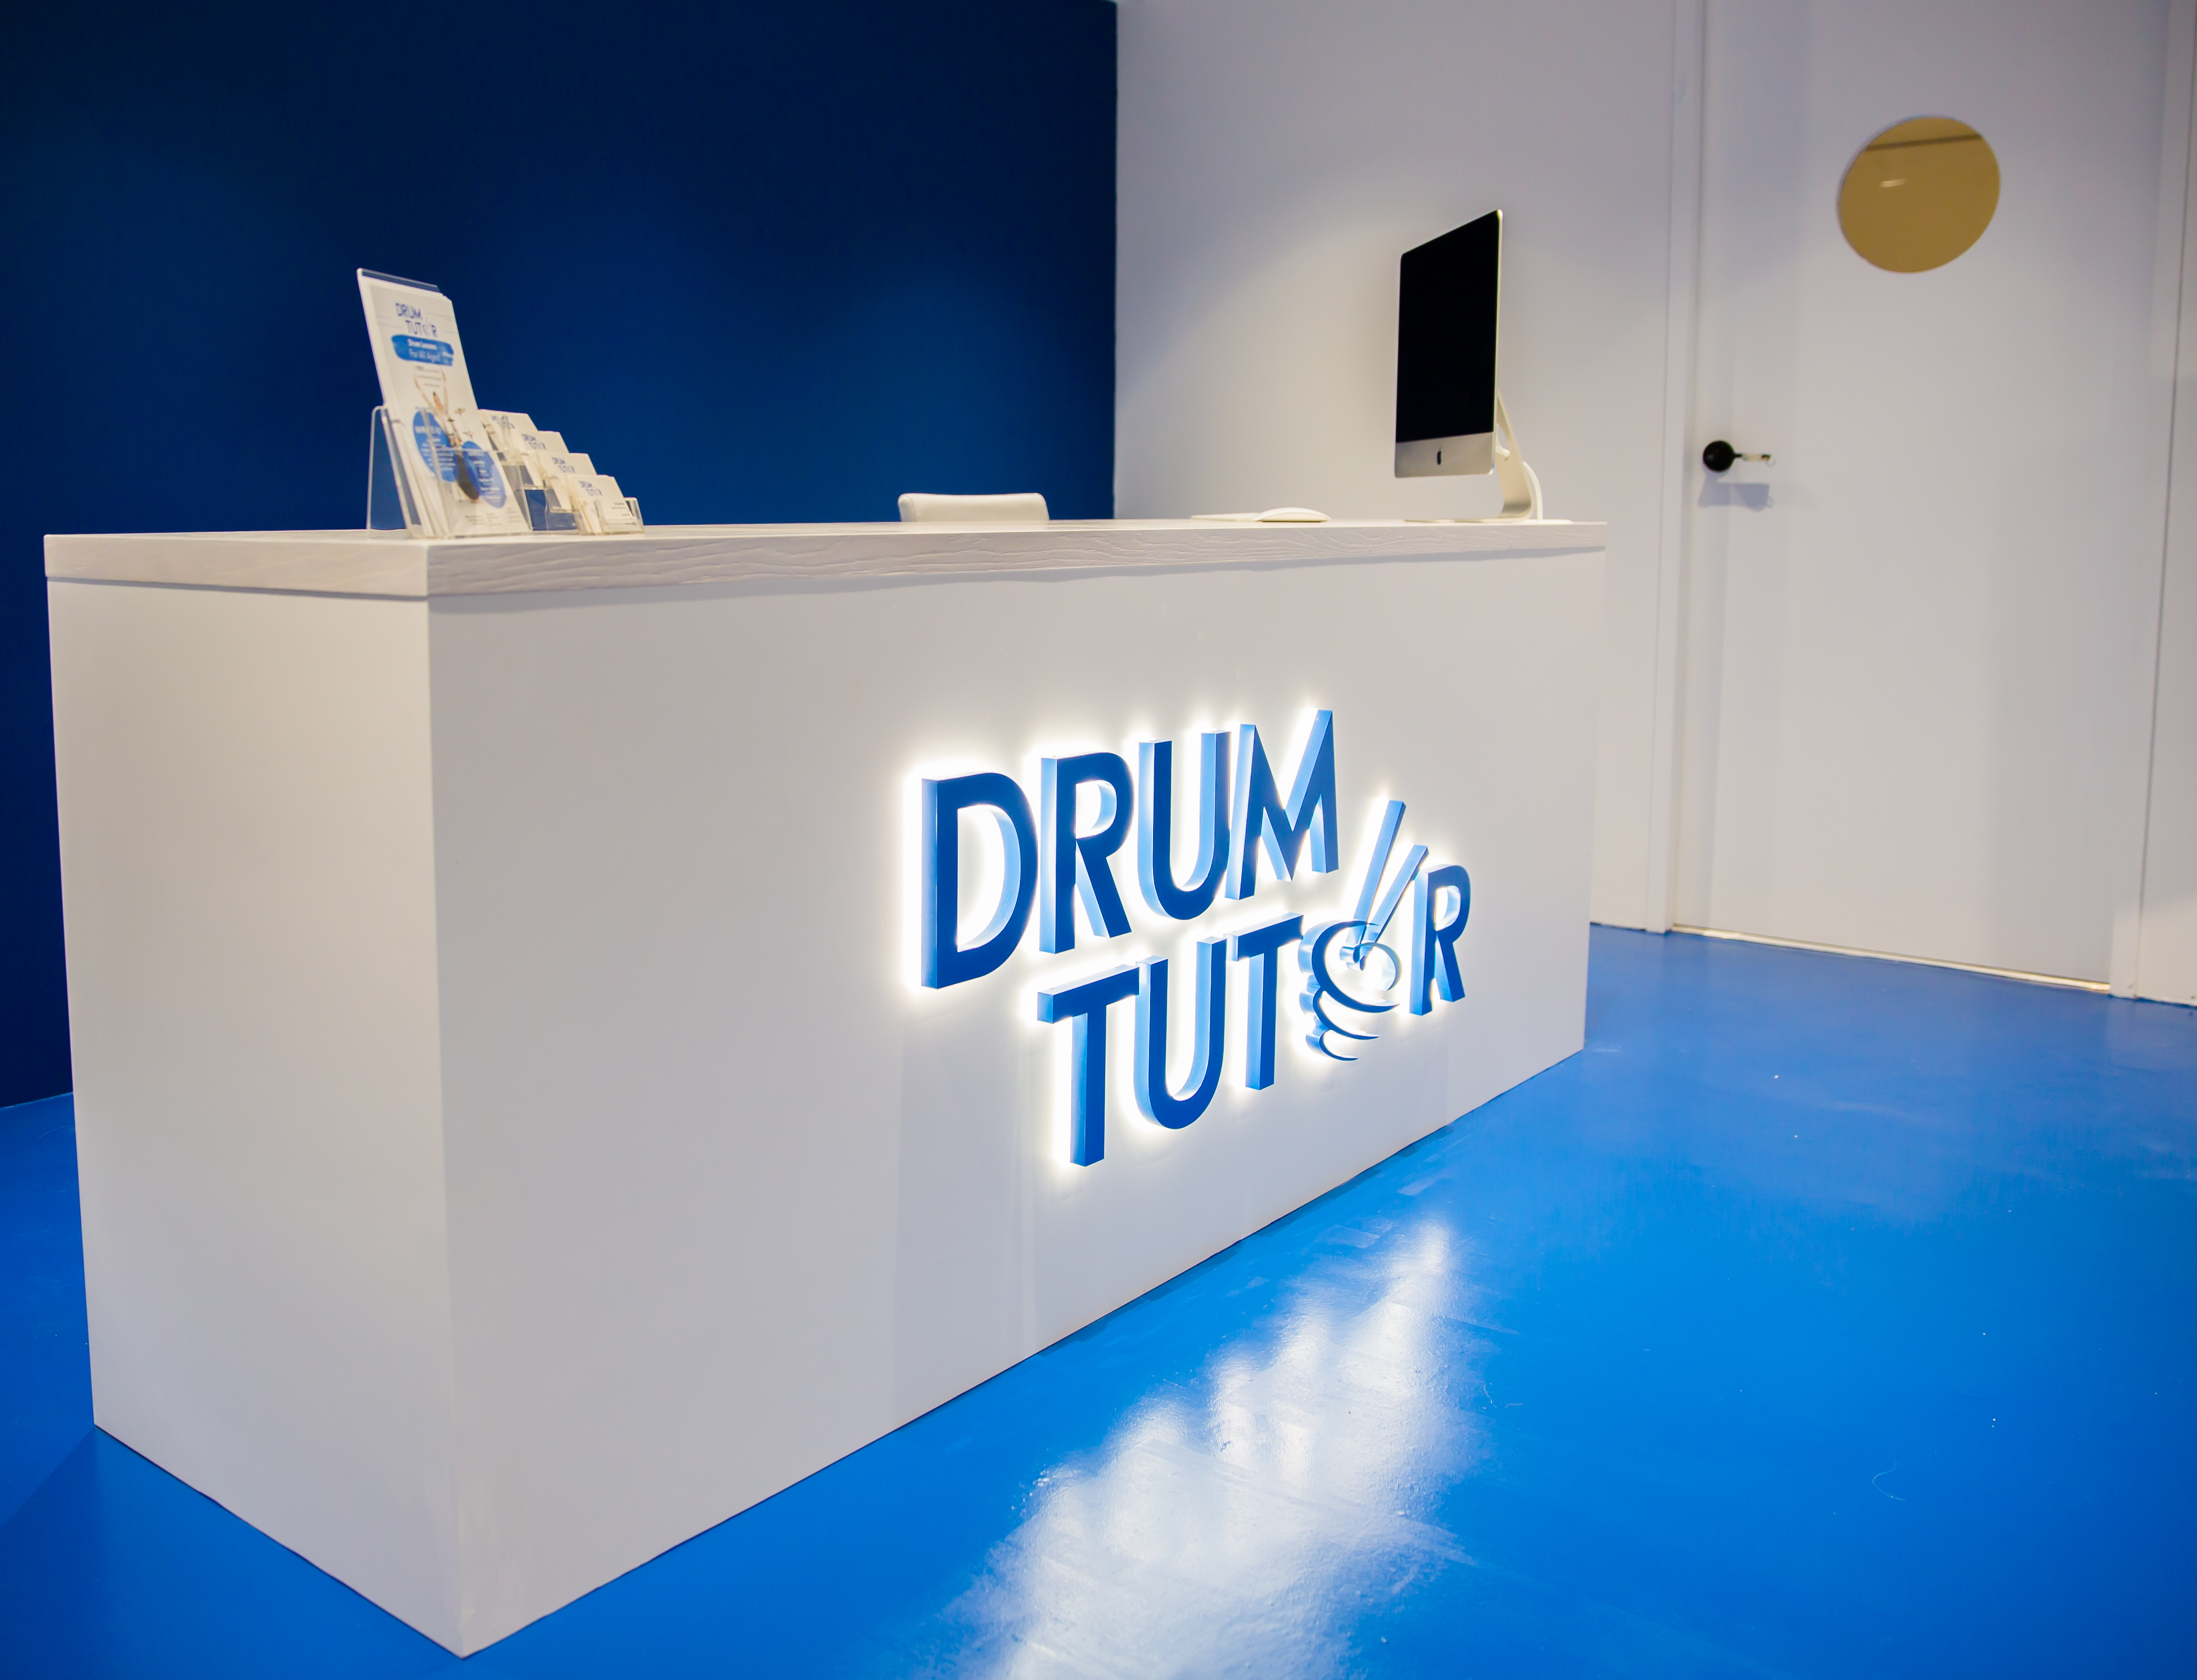 Drum Tutor Reception Area